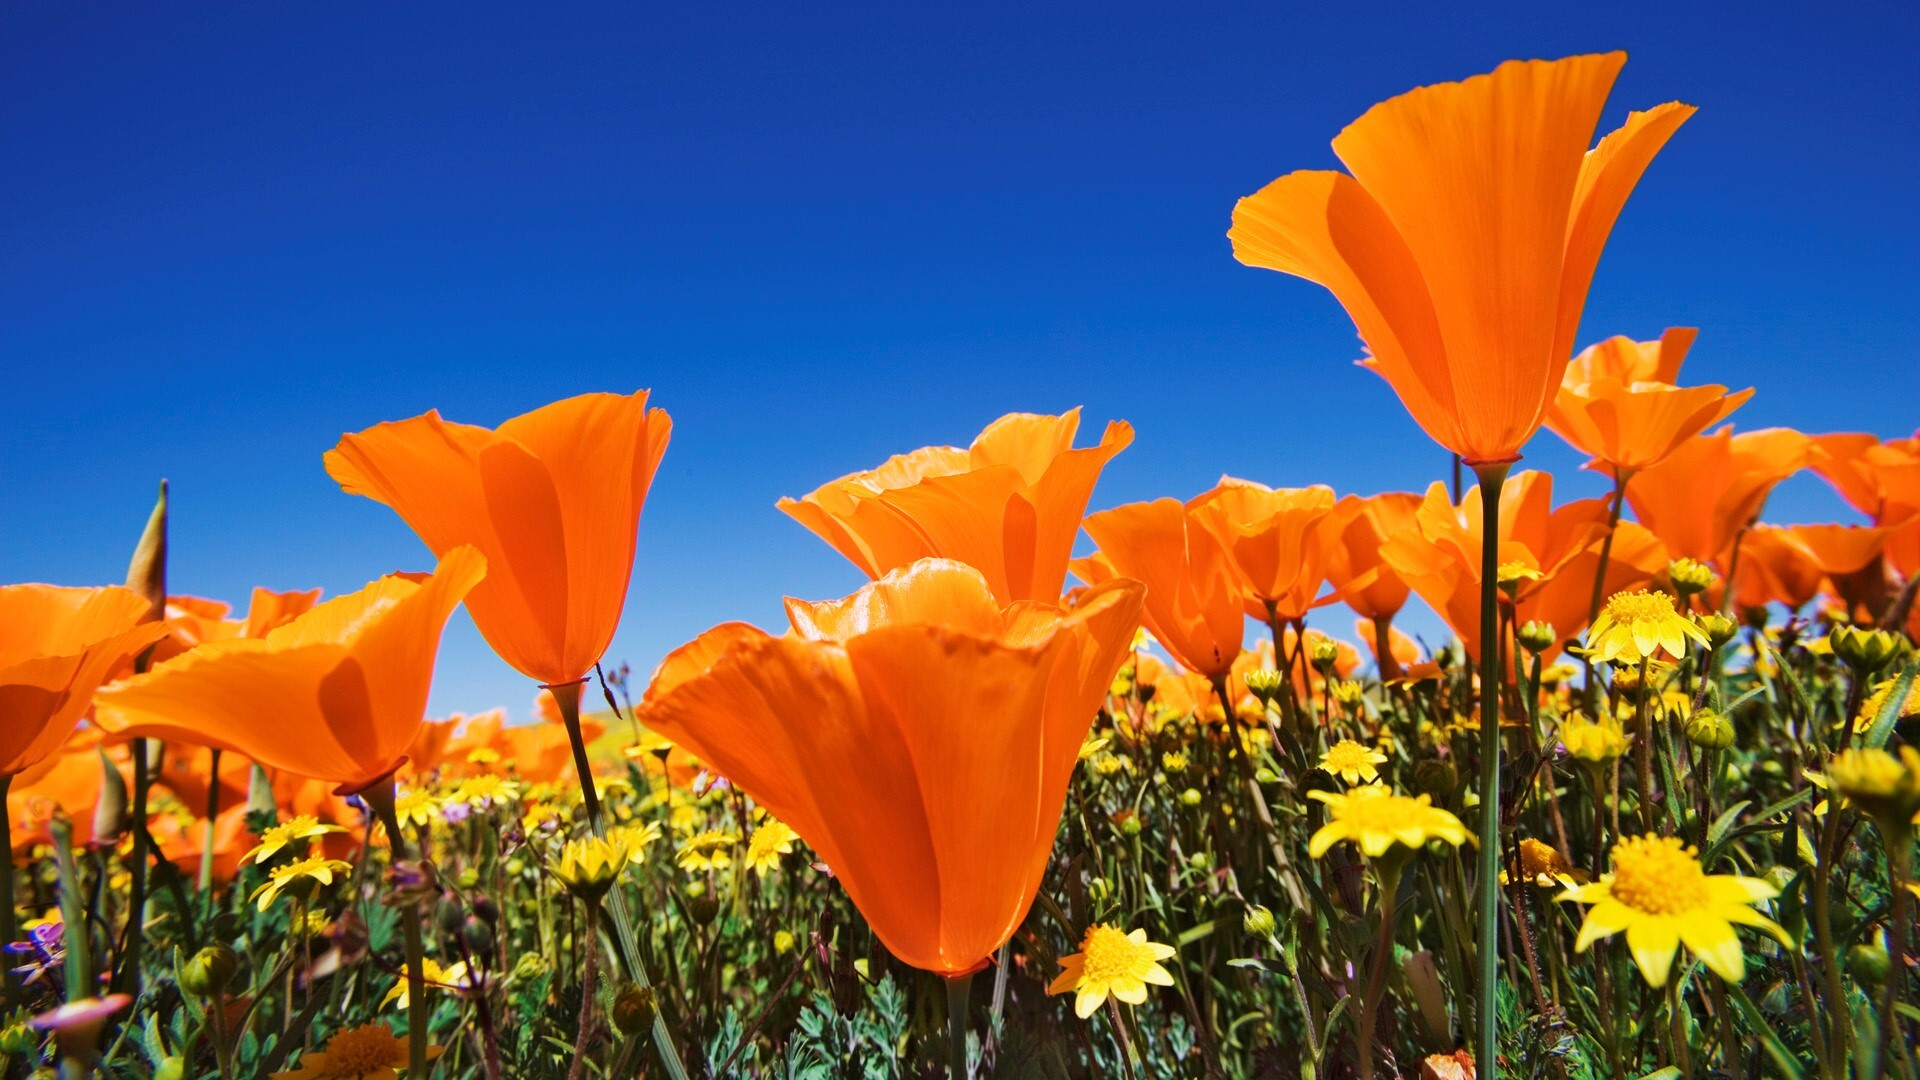 Nice beautiful orange flowers on farm photos hd wallpapers for Paesaggi di primavera per desktop